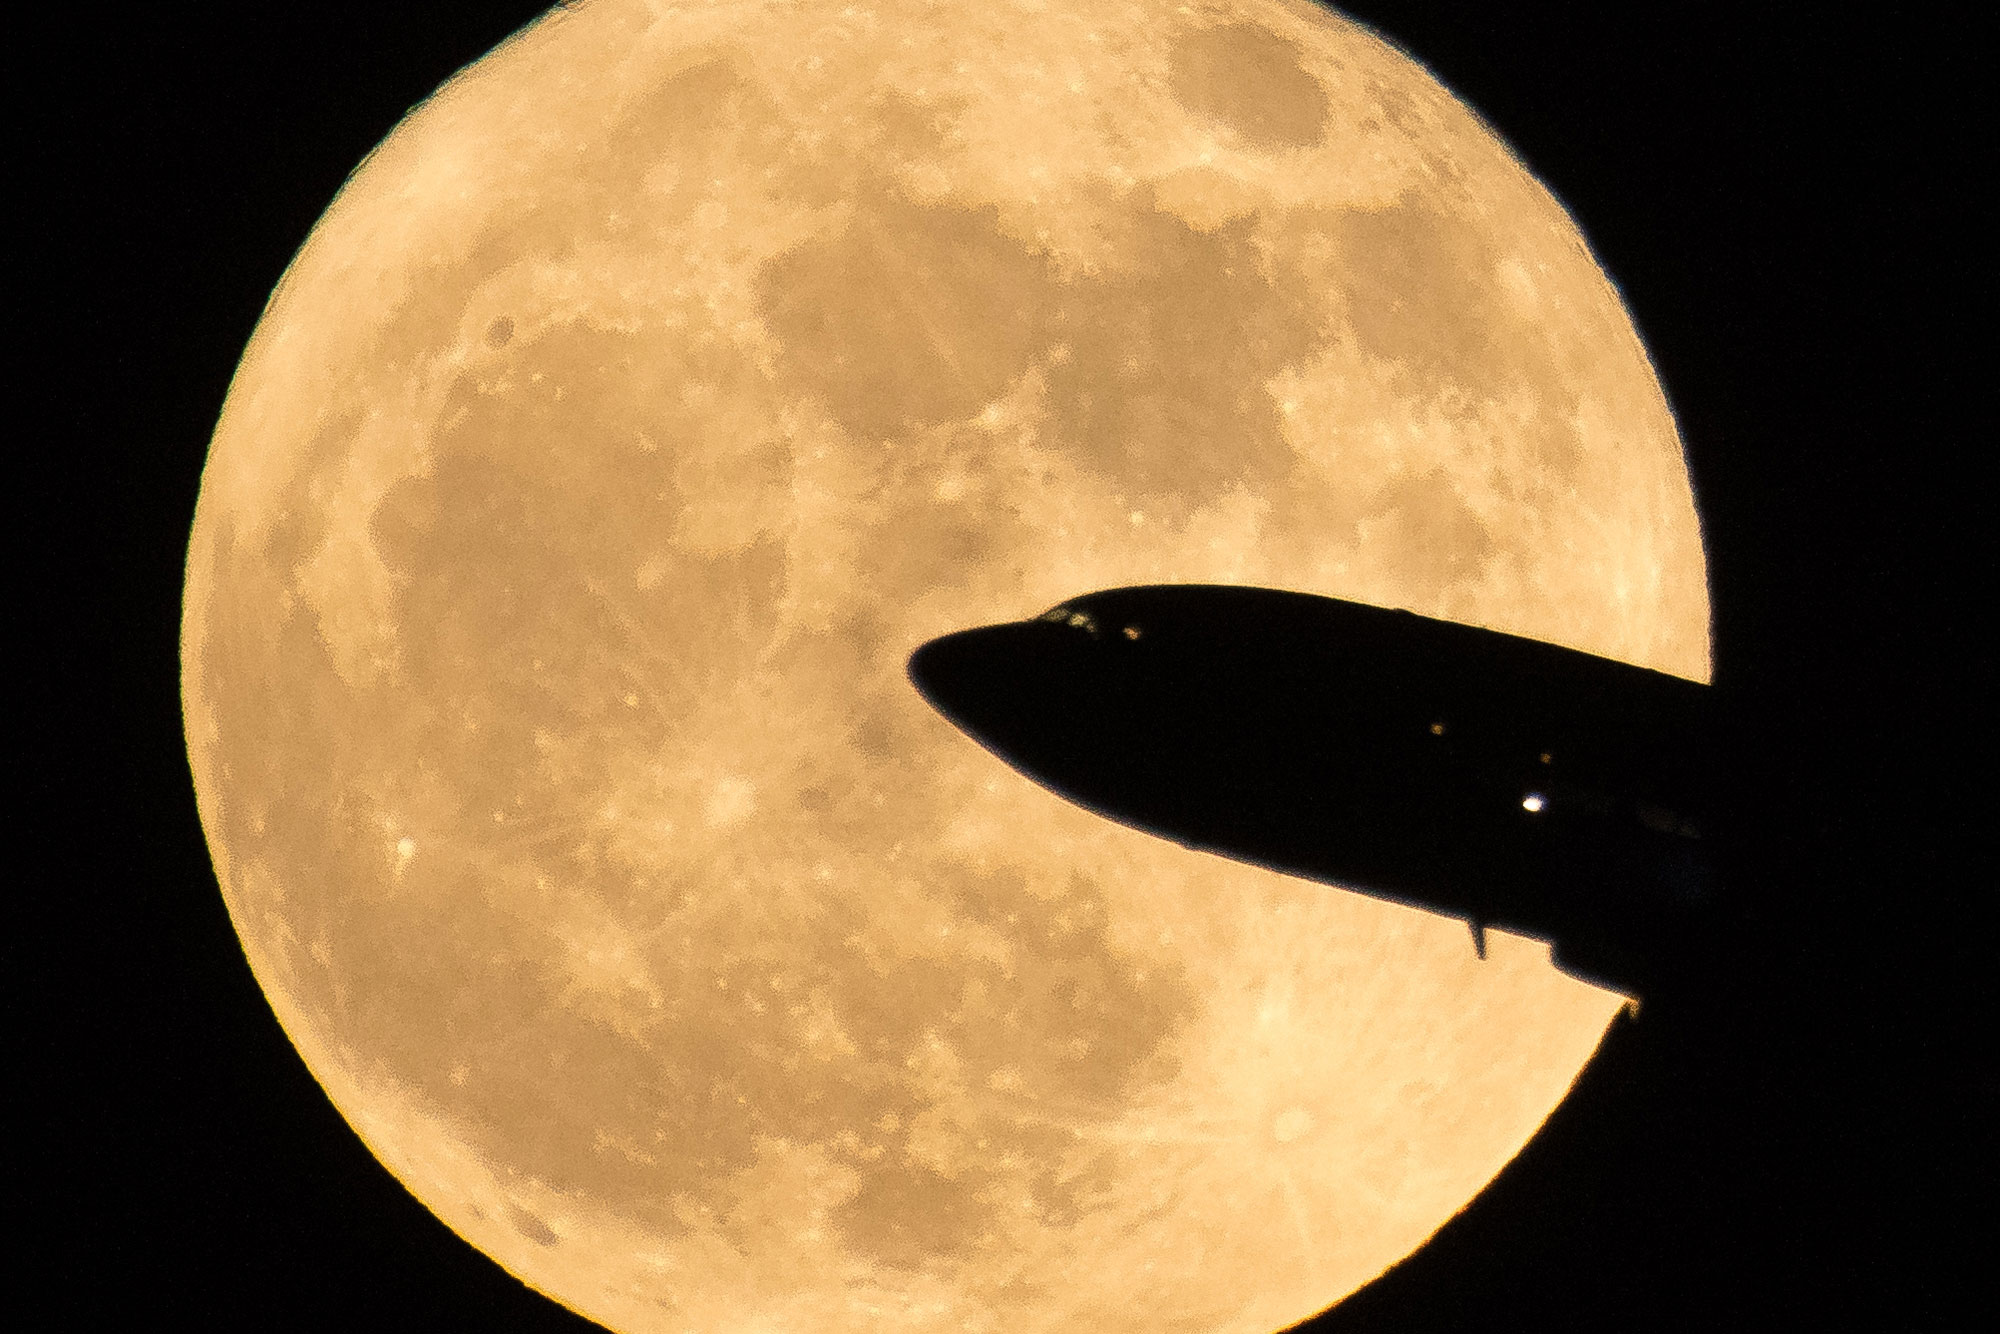 <p>An aircraft taking off from Ronald Reagan National Airport is seen passing in front of the Moon as it rises, Sunday, Dec. 3, 2017 in Washington, D.C.</p>